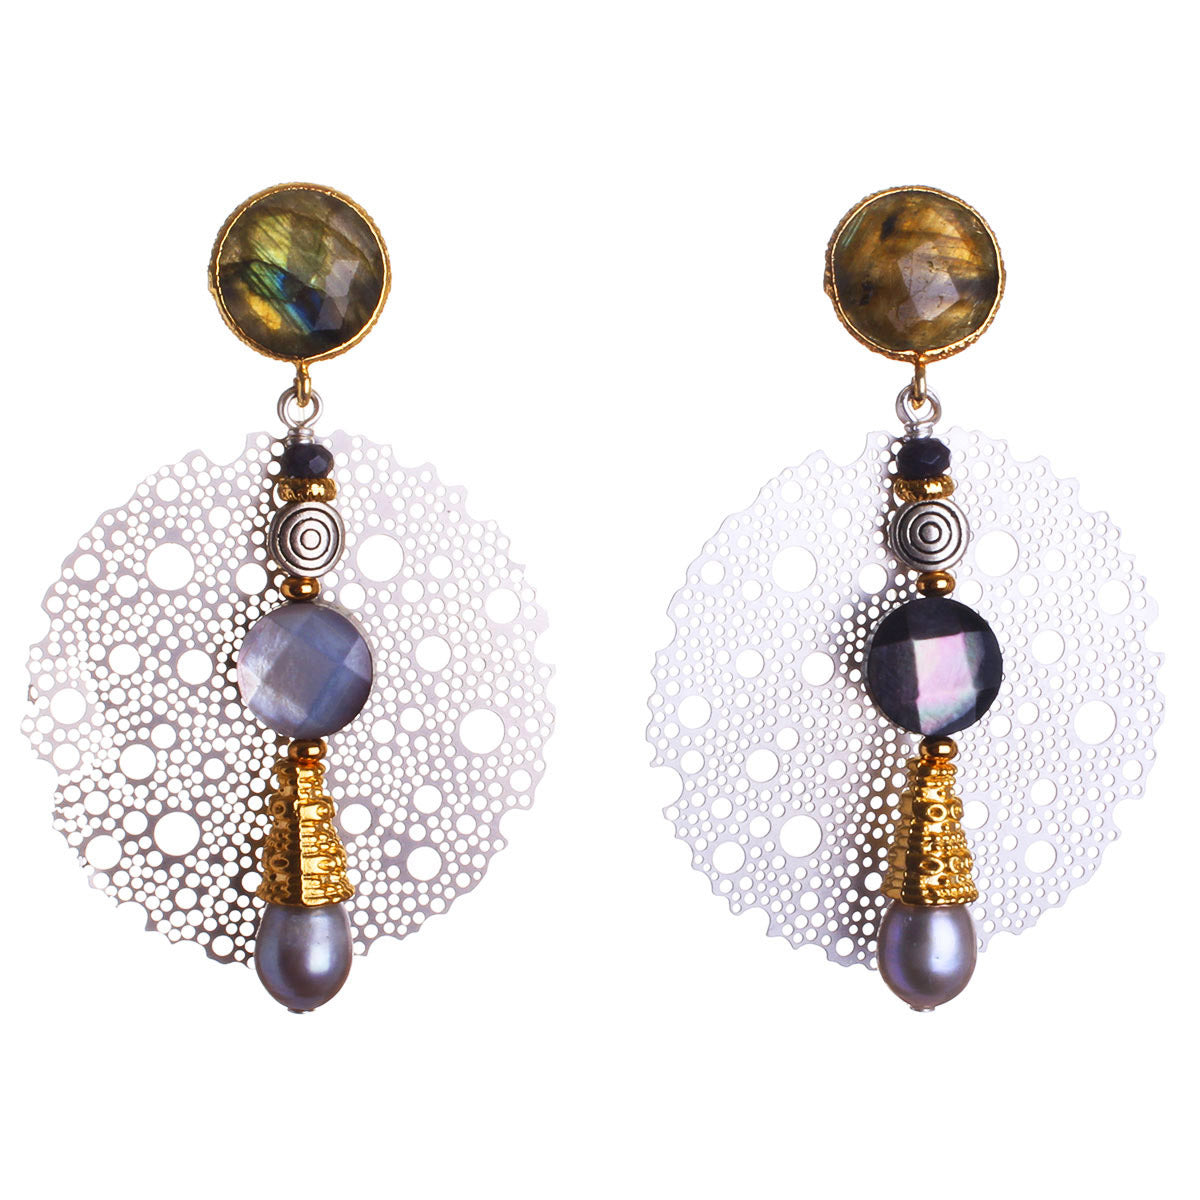 N°540 The Labradorite Soul Carrier Statement Earrings